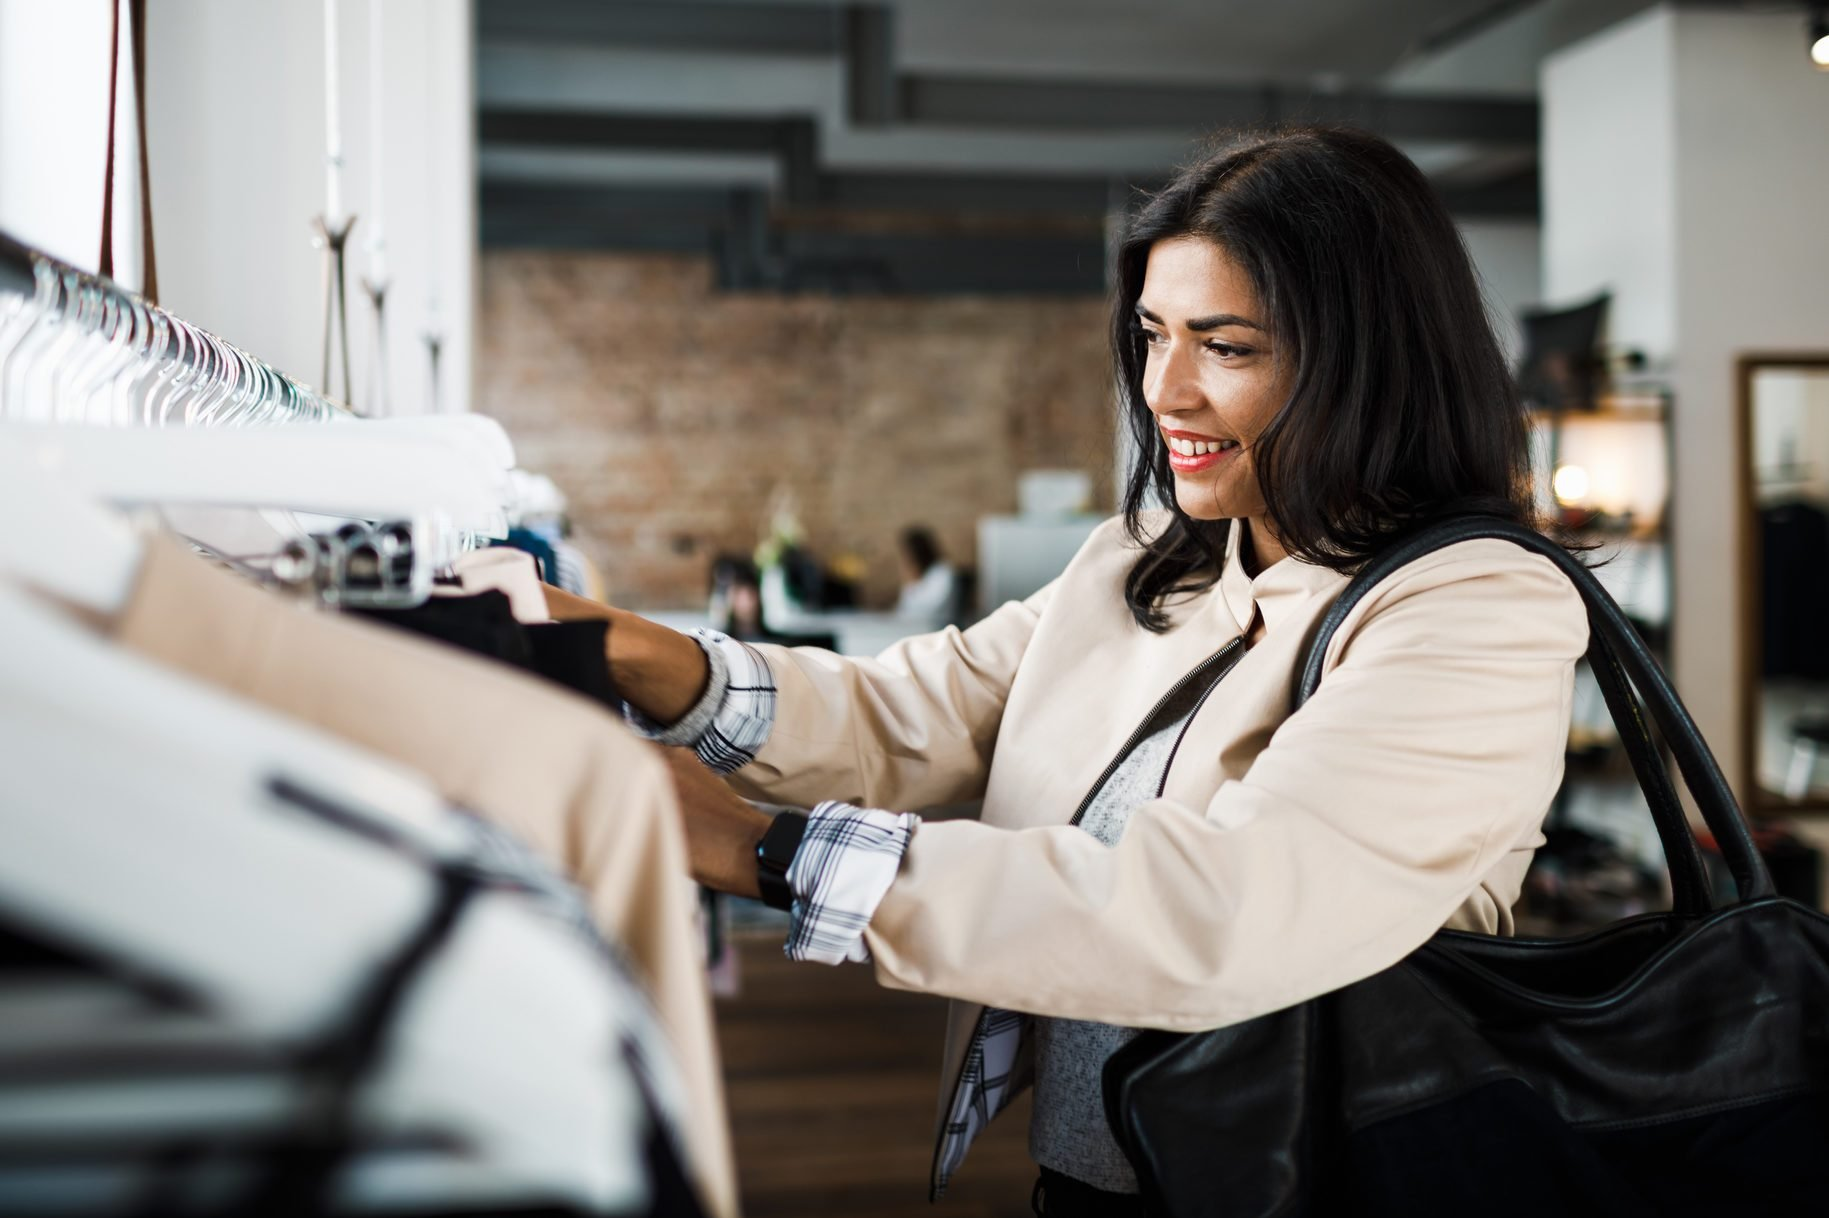 Woman Browsing Clothes In City Shop